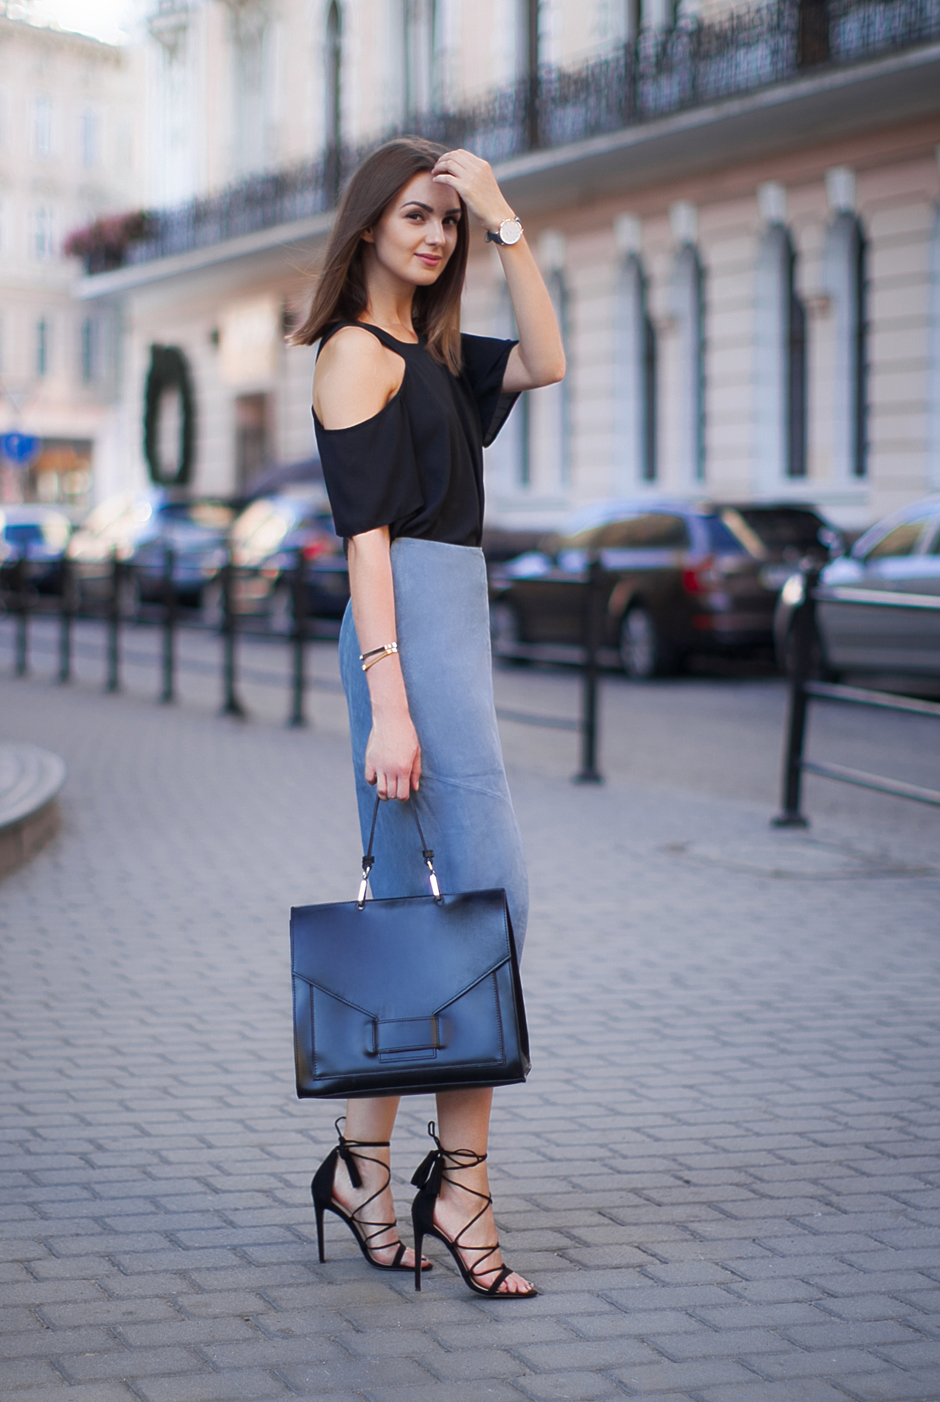 Suede pencil skirt x asos u2013 Fashion Agony | Daily outfits fashion trends and inspiration ...